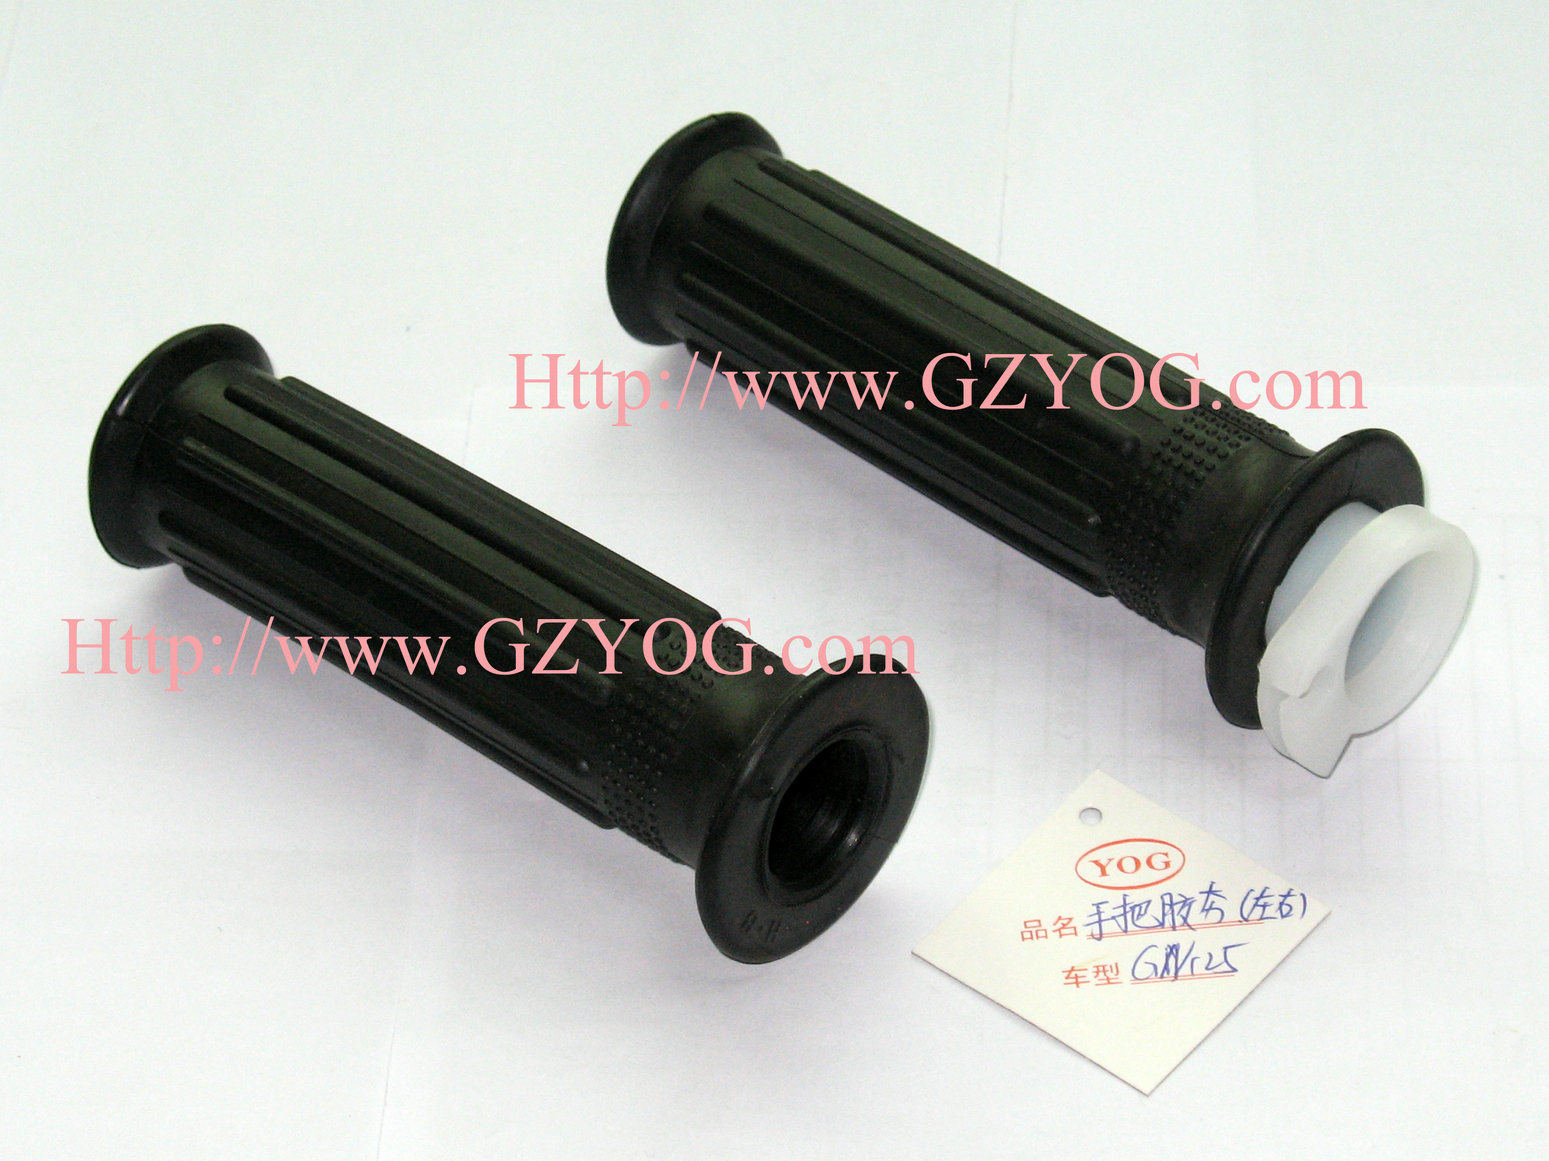 Yog Motorcycle Spare Parts Handle Grips Hand Grip Universal Accessories